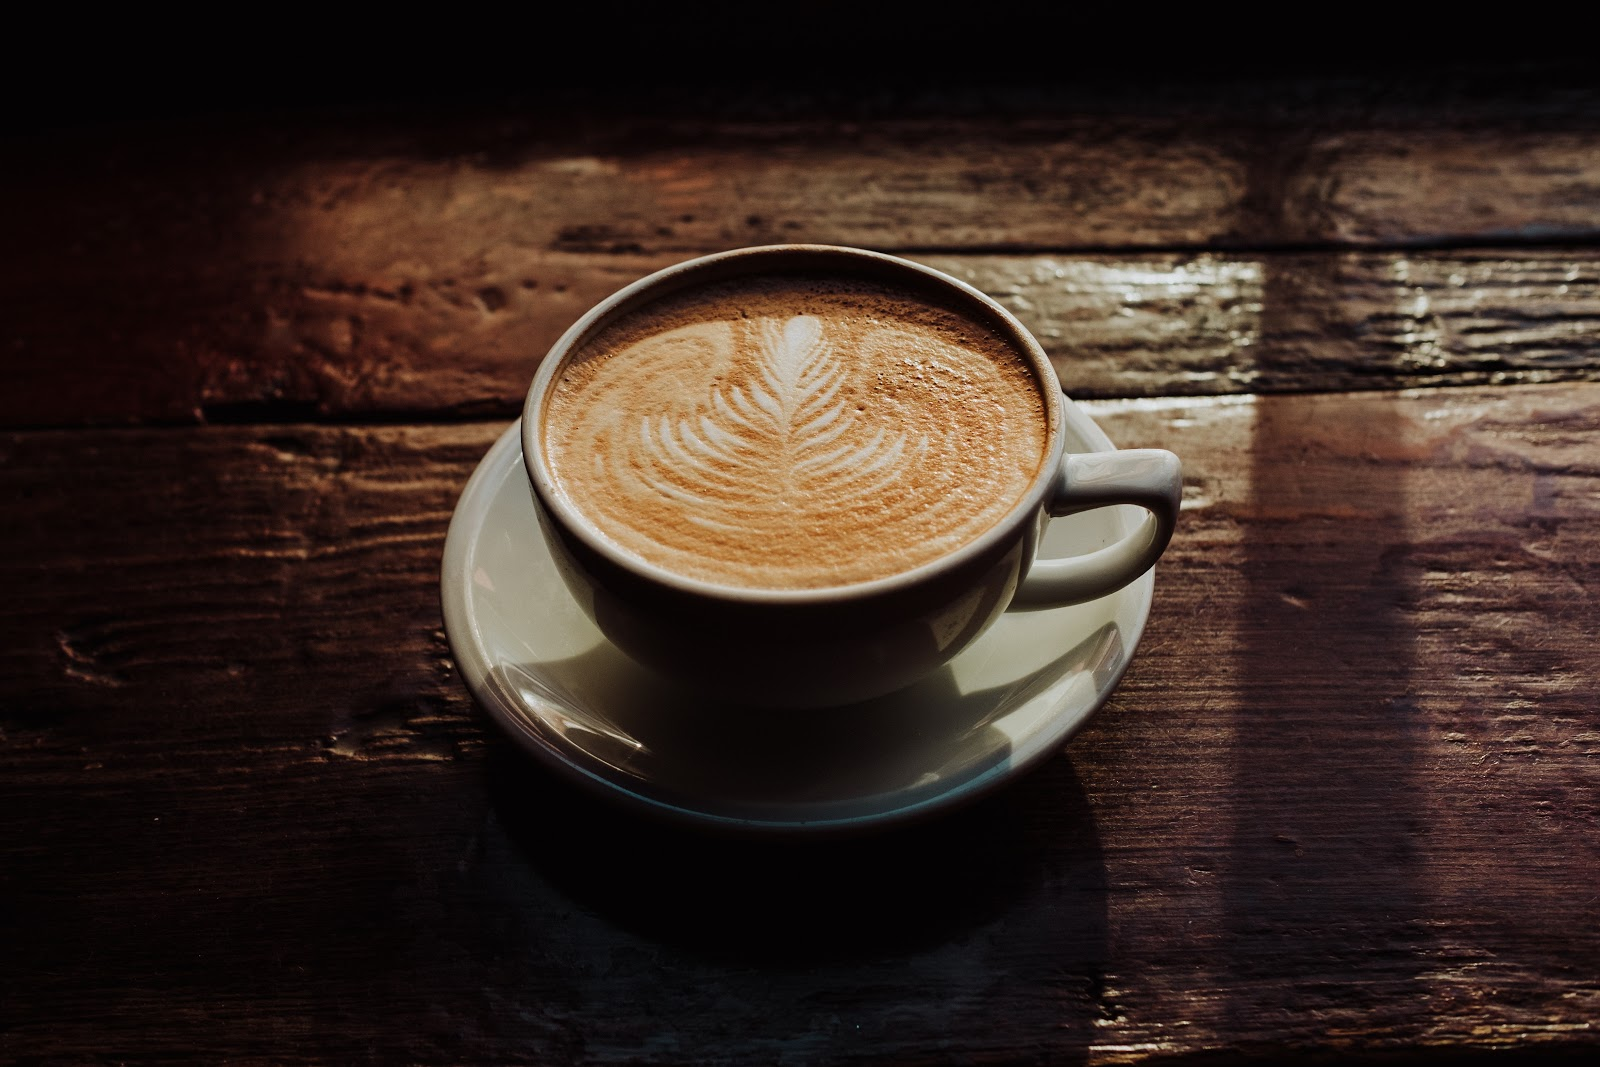 Latte sitting on saucer on a wood table